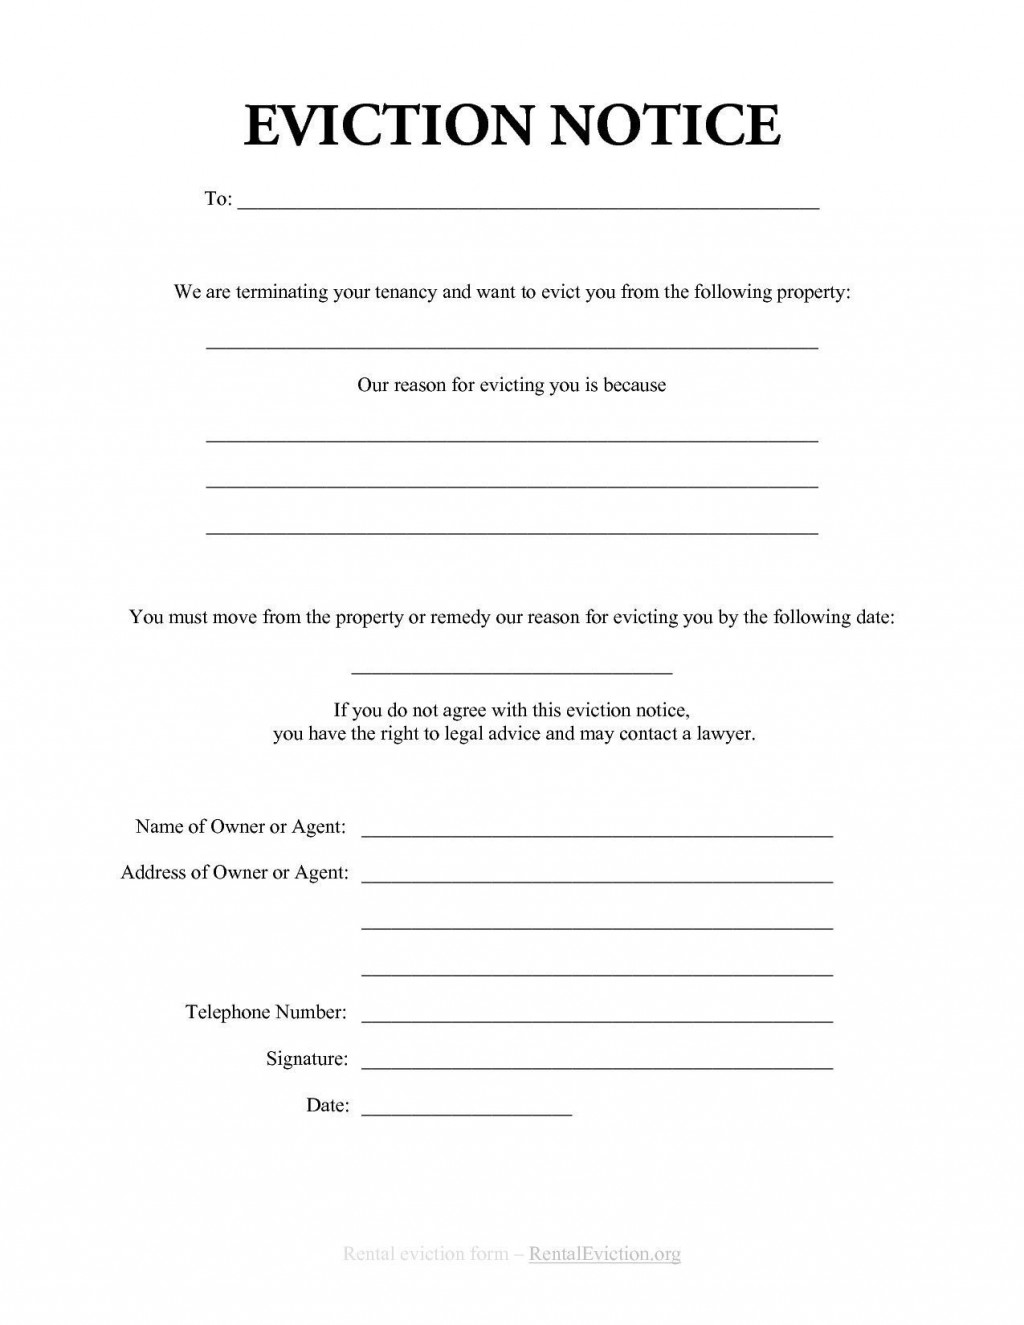 007 Wondrou 30 Day Eviction Notice Template Picture  Pdf FormLarge